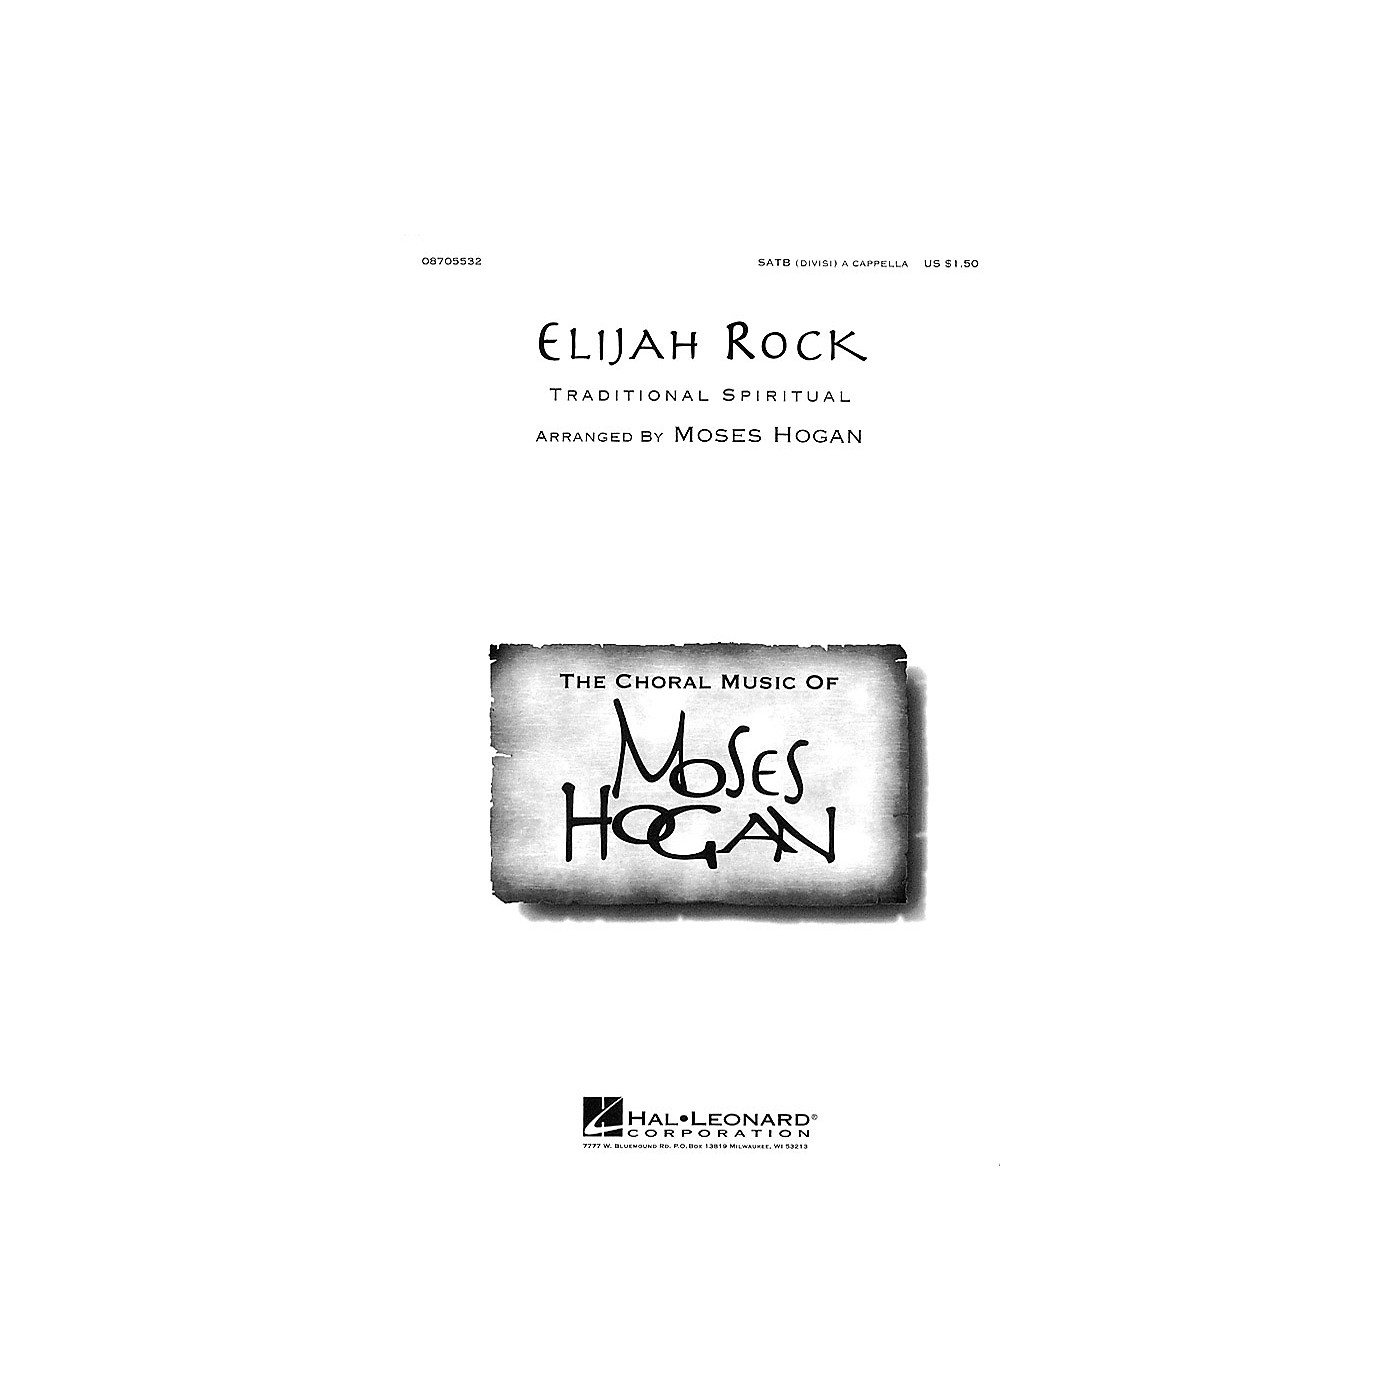 Hal Leonard Elijah Rock SATB arranged by Moses Hogan thumbnail